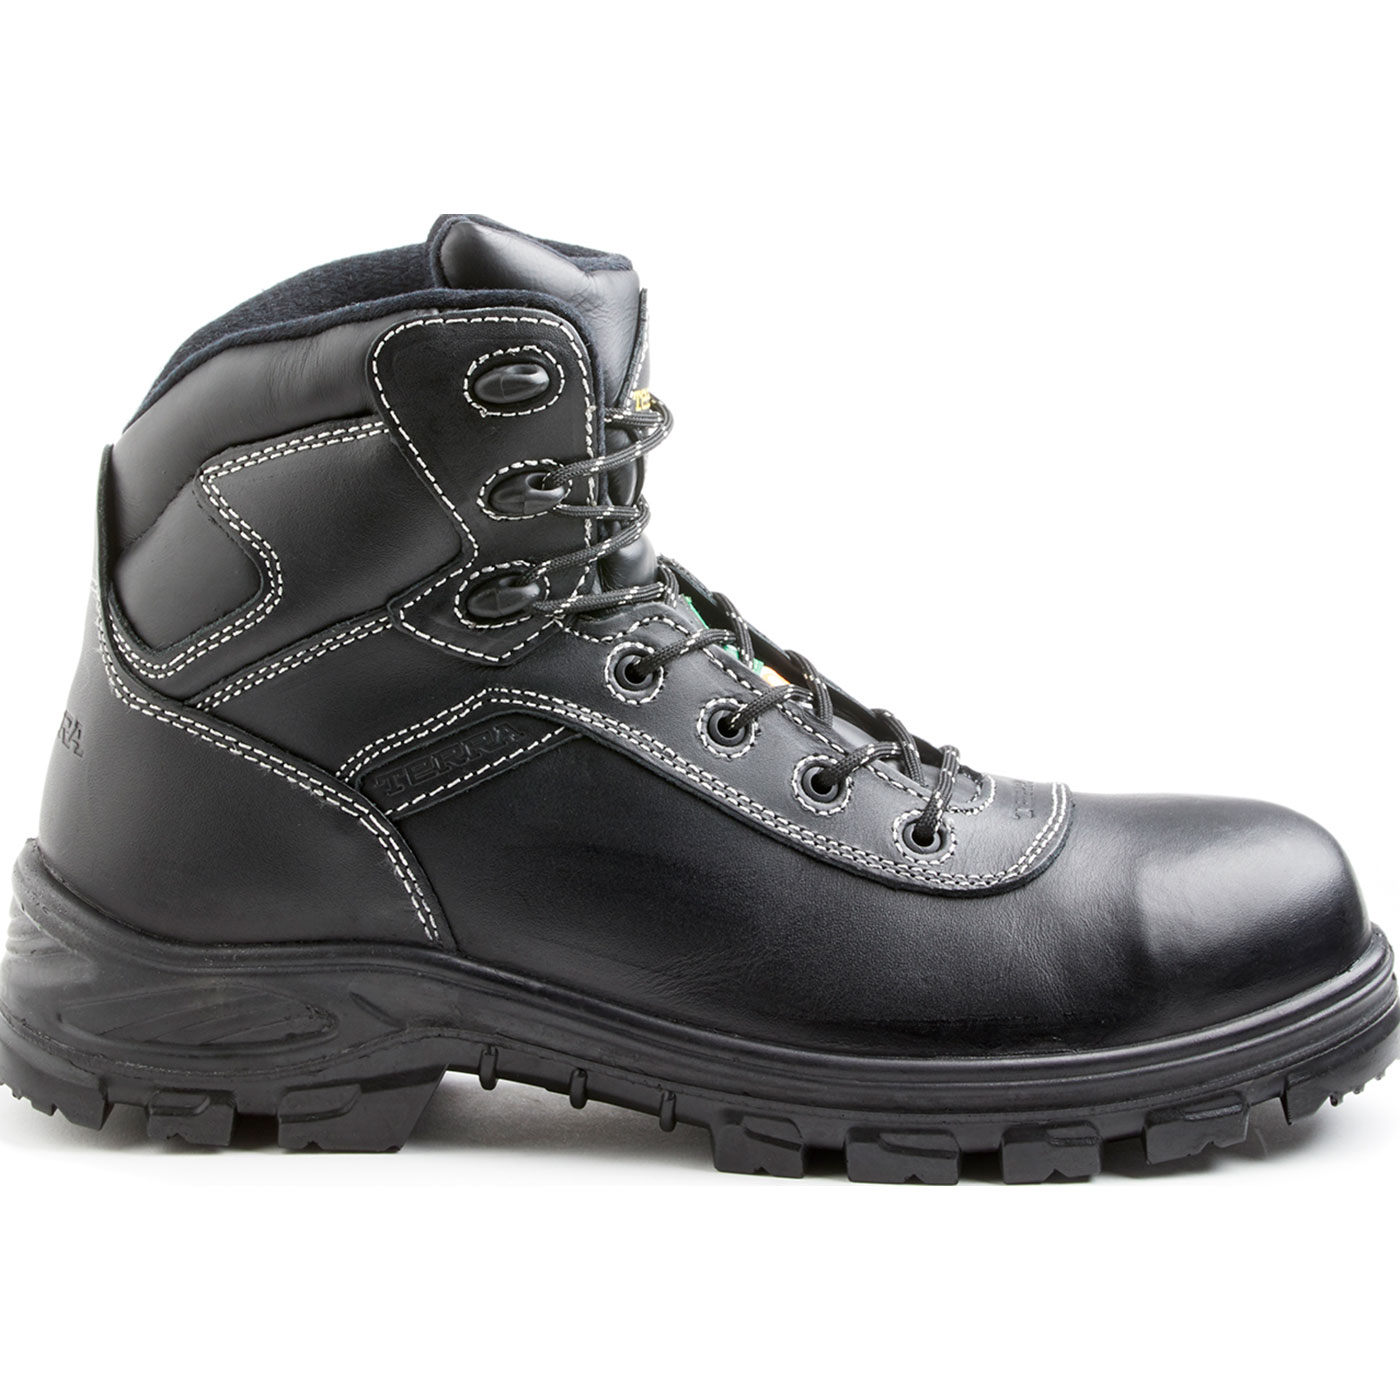 ca37e86abb8 Terra Quinton Men's 6 inch Composite Toe CSA-Approved Puncture Resistant  Electrical Hazard Work Boot